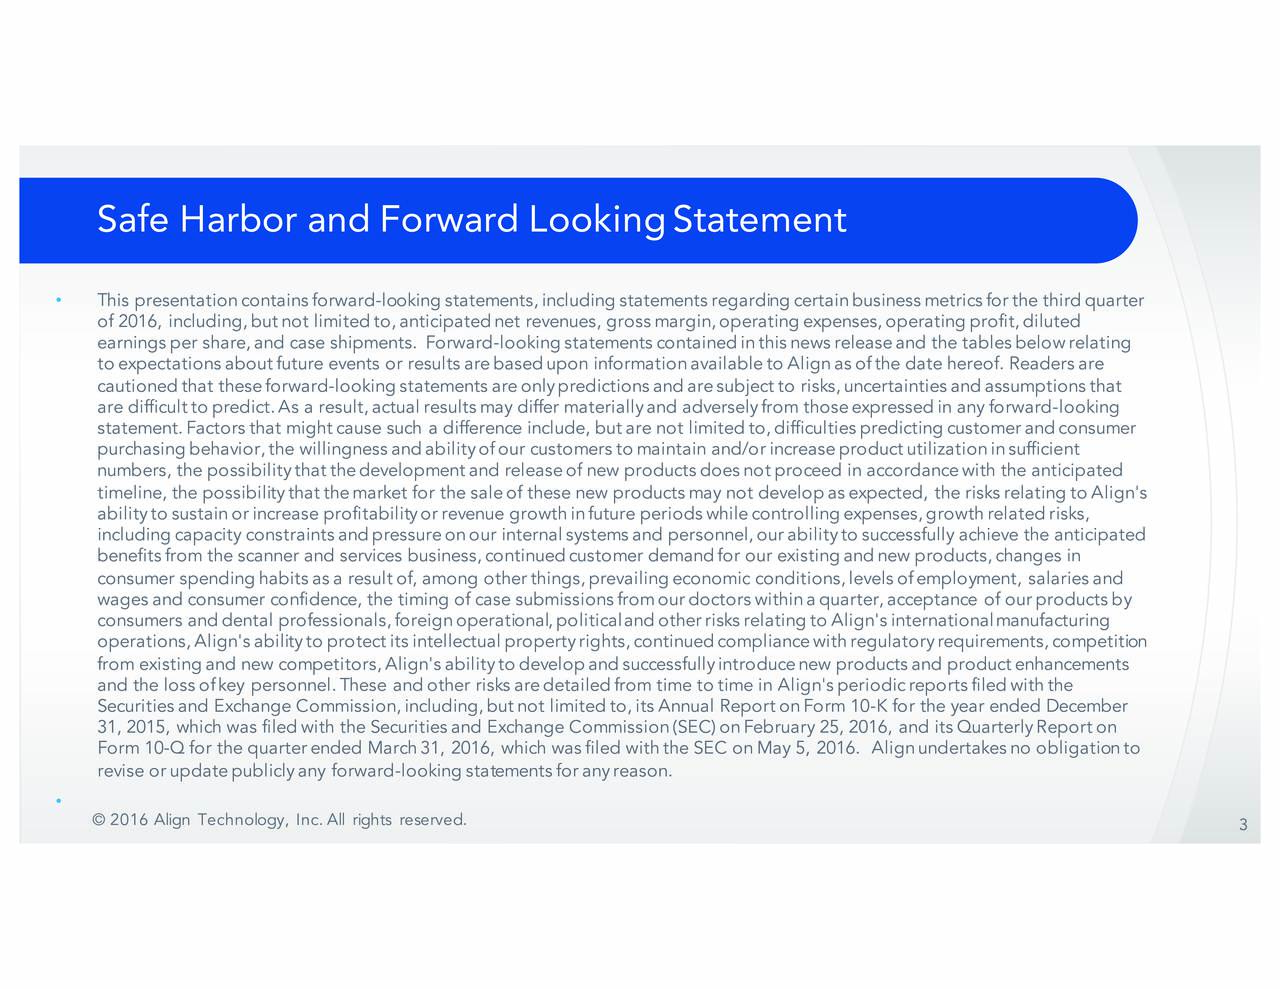 This presentation containsforward-lookingstatements,includingstatementsregardingcertainbusinessmetricsforthe thirdquarter of2016, including,butnot limitedto,anticipatednet revenues, grossmargin,operatingexpenses,operatingprofit,diluted earnings per share, and case shipments. Forward -lookingstatementscontainedinthisnewsreleaseand the tablesbelowrelating toexpectationsaboutfuture events or resultsarebasedupon informationavailabletoAlignasofthe date hereof. Readersa re cautioned that these forward -lookingstatementsareonlypredictionsandaresubjectto risks,uncertaintiesandassumptionstha t are difficulttopredict.As a result,actualresultsmay differ materiallyand adverselyfrom thoseexpressedin any forward -looking statement.Factorsthat mightcause such a difference include, butare not limitedto,difficultiespredictingcustomerandc onsumer purchasingbehavior,the willingnessandabilityofour customersto maintain and/orincreaseproductutilizationinsufficie nt numbers, the possibilitythat the development and release of new products does not proceed in accordance with the anticipated timeline, the possibilitythatthemarket for the saleof these new productsmay not developasexpected, the risksrelating to Align's abilitytosustainorincrease profitabilityorrevenue growthinfuture periodswhilecontrollingexpenses,growthrelatedr isks, includingcapacity constraintsandpressureonour internalsystemsand personnel,ourabilitytosuccessfully achieve the an ticipated benefitsfrom the scanner and services business,continuedcustomer demandfor our existingandnew products,changes in consumer spending habits as a result of, among other things, prevailing economic conditions, levels of employment, salanrd ies a wages and consumer confidence, the timing of case submissions fromour doctors withina quarter,acceptance of our products b y consumers and dental professionals, foreign operational, politicaland other risks relatinA glion's internationalmanufacturing operations, Align's abilitytoprotectitsintellectualp